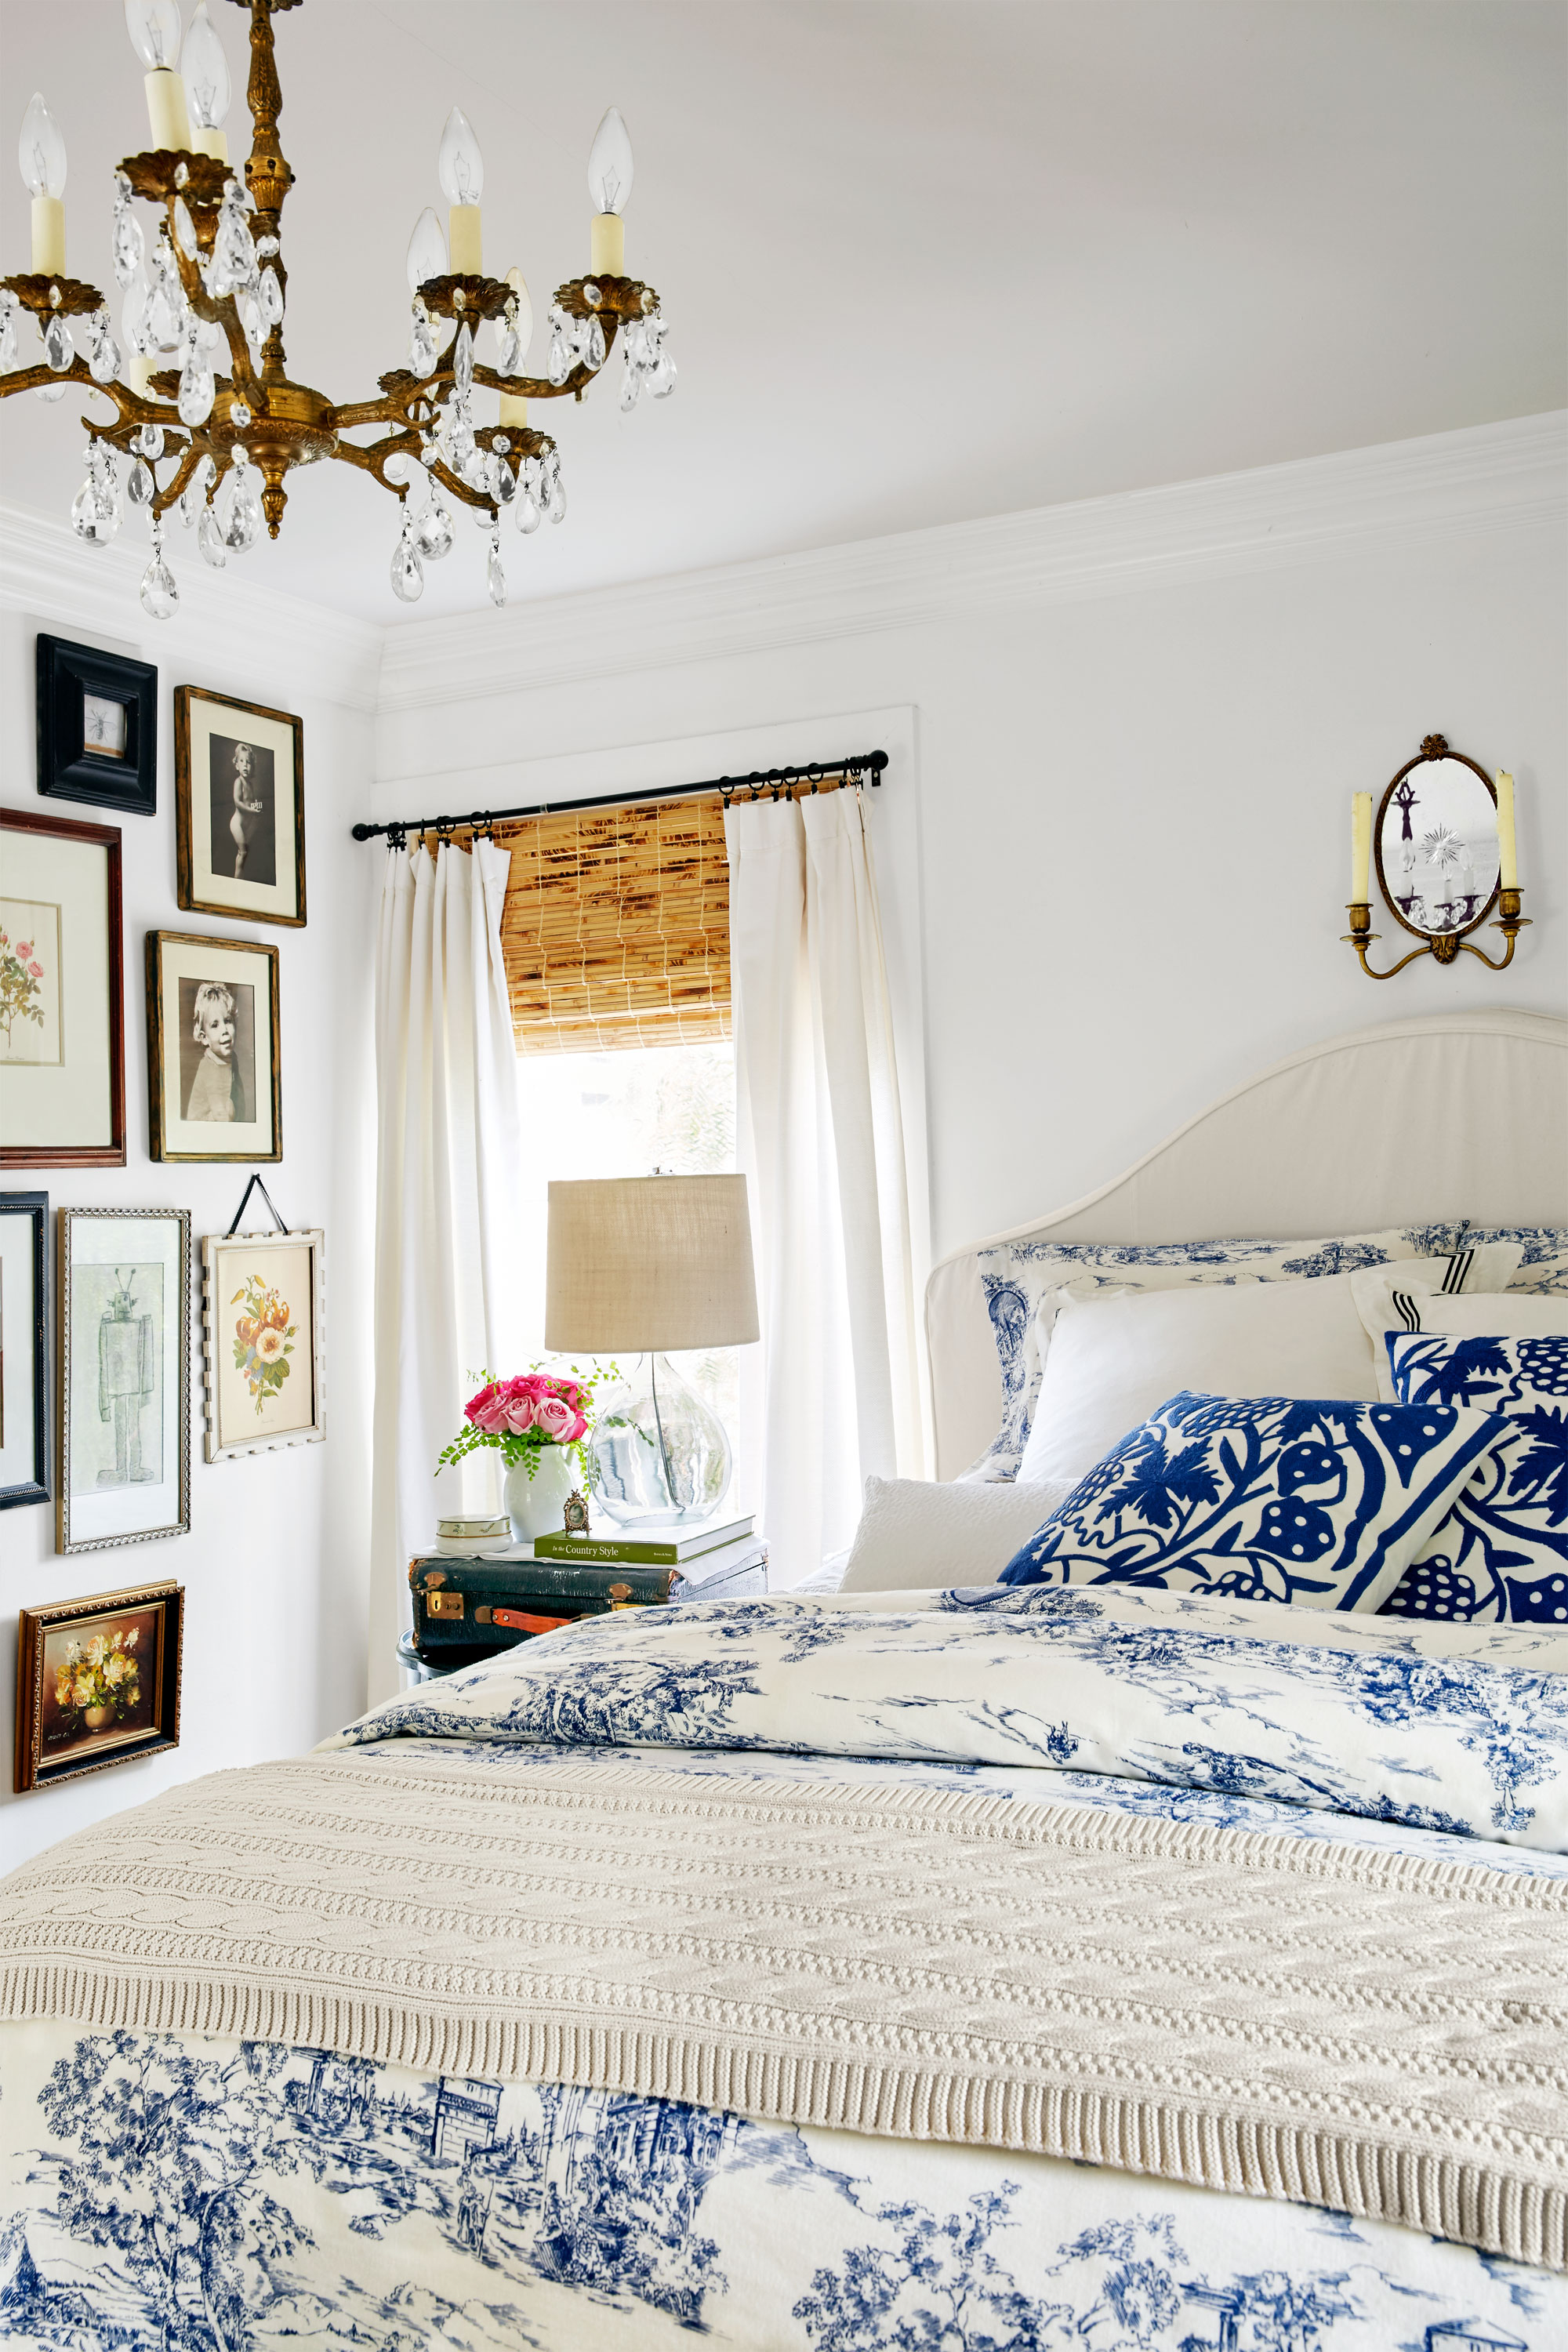 100 Bedroom Decorating Ideas In 2017 Designs For Beautiful Bedrooms